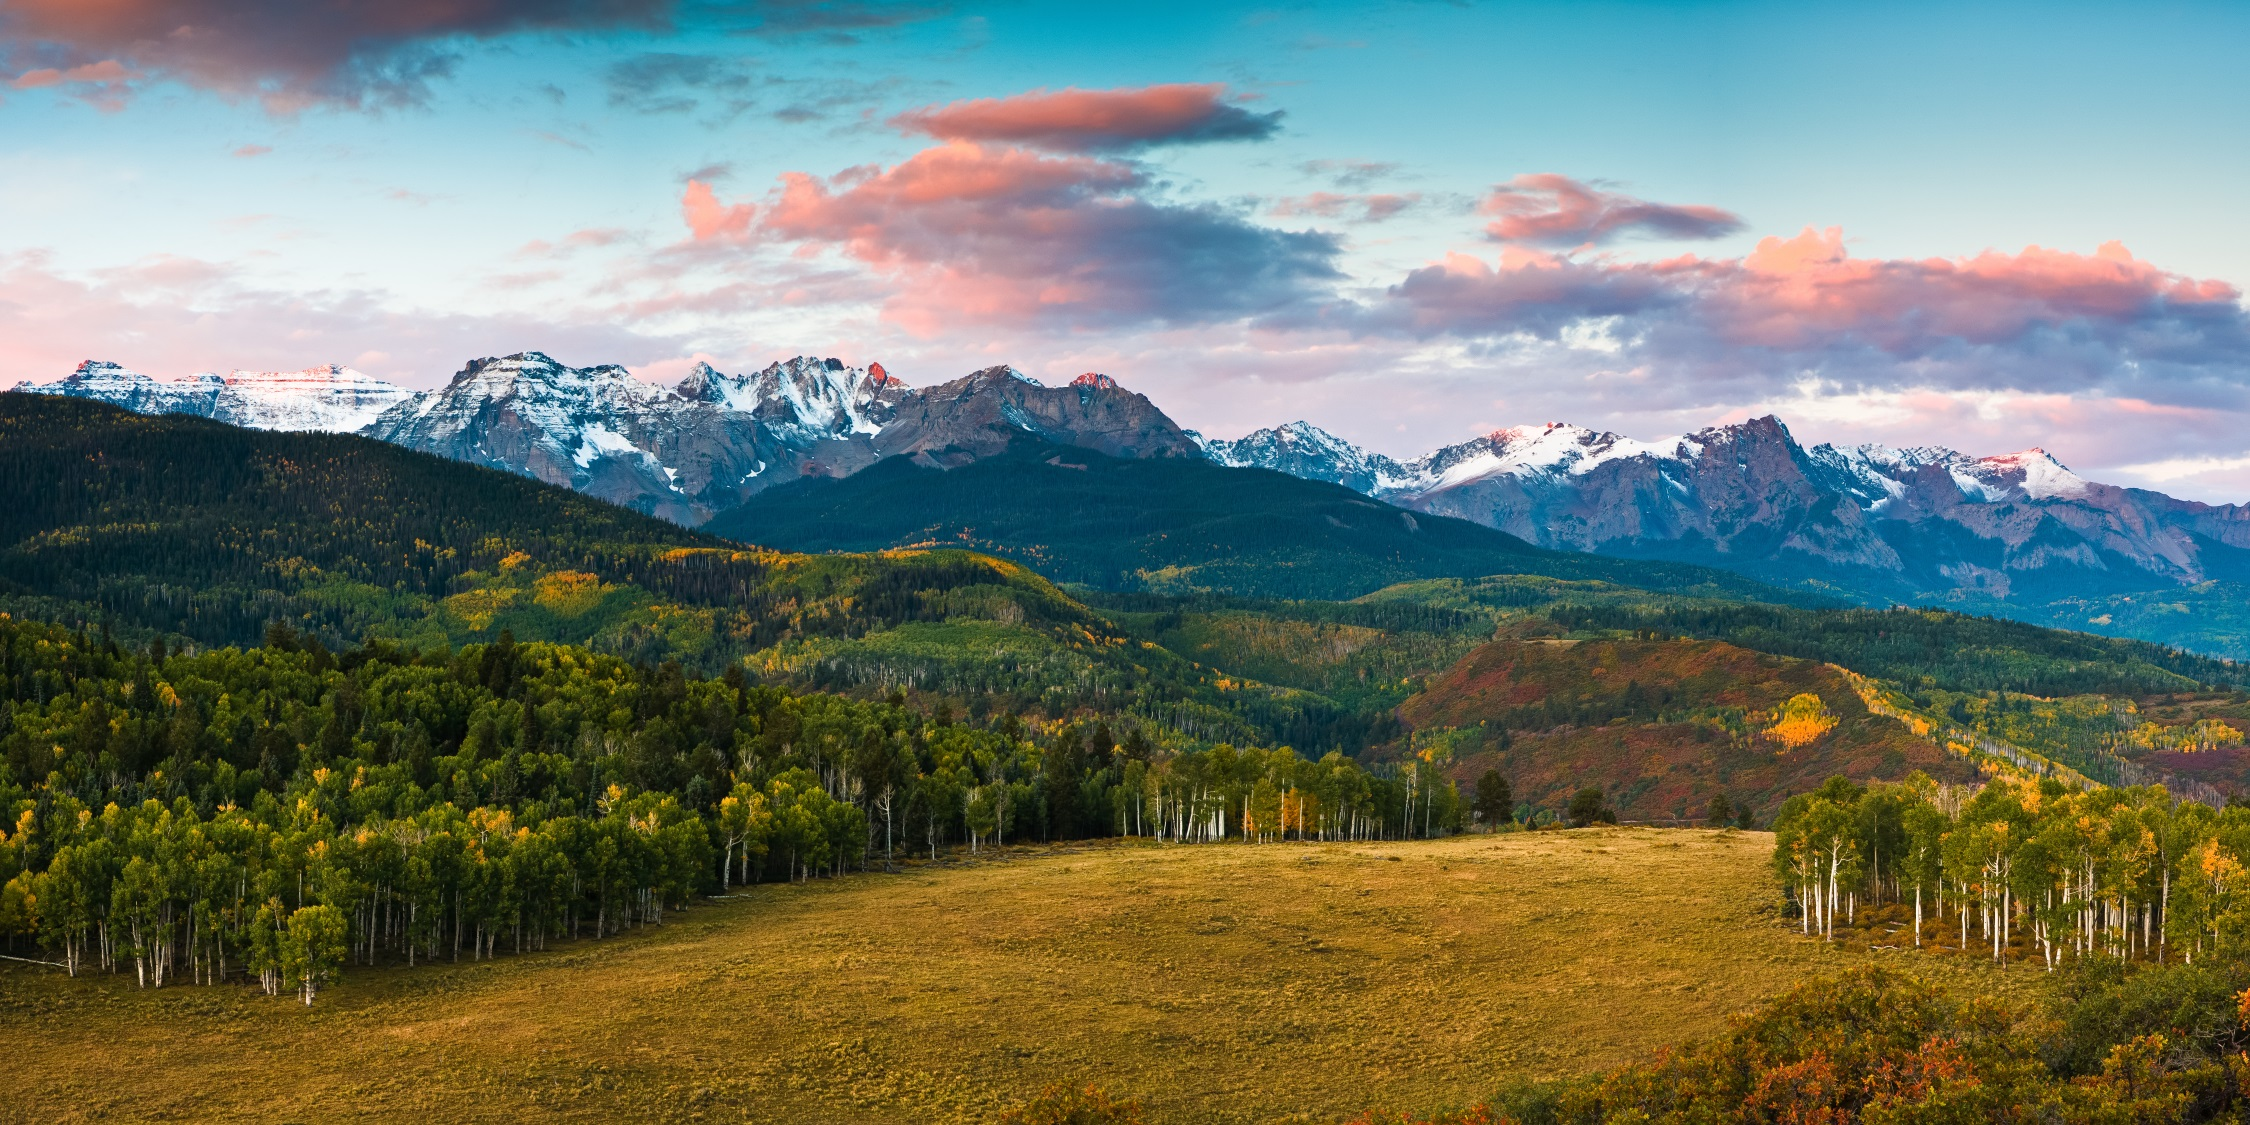 First Light in the San Juan Mountains (photo)